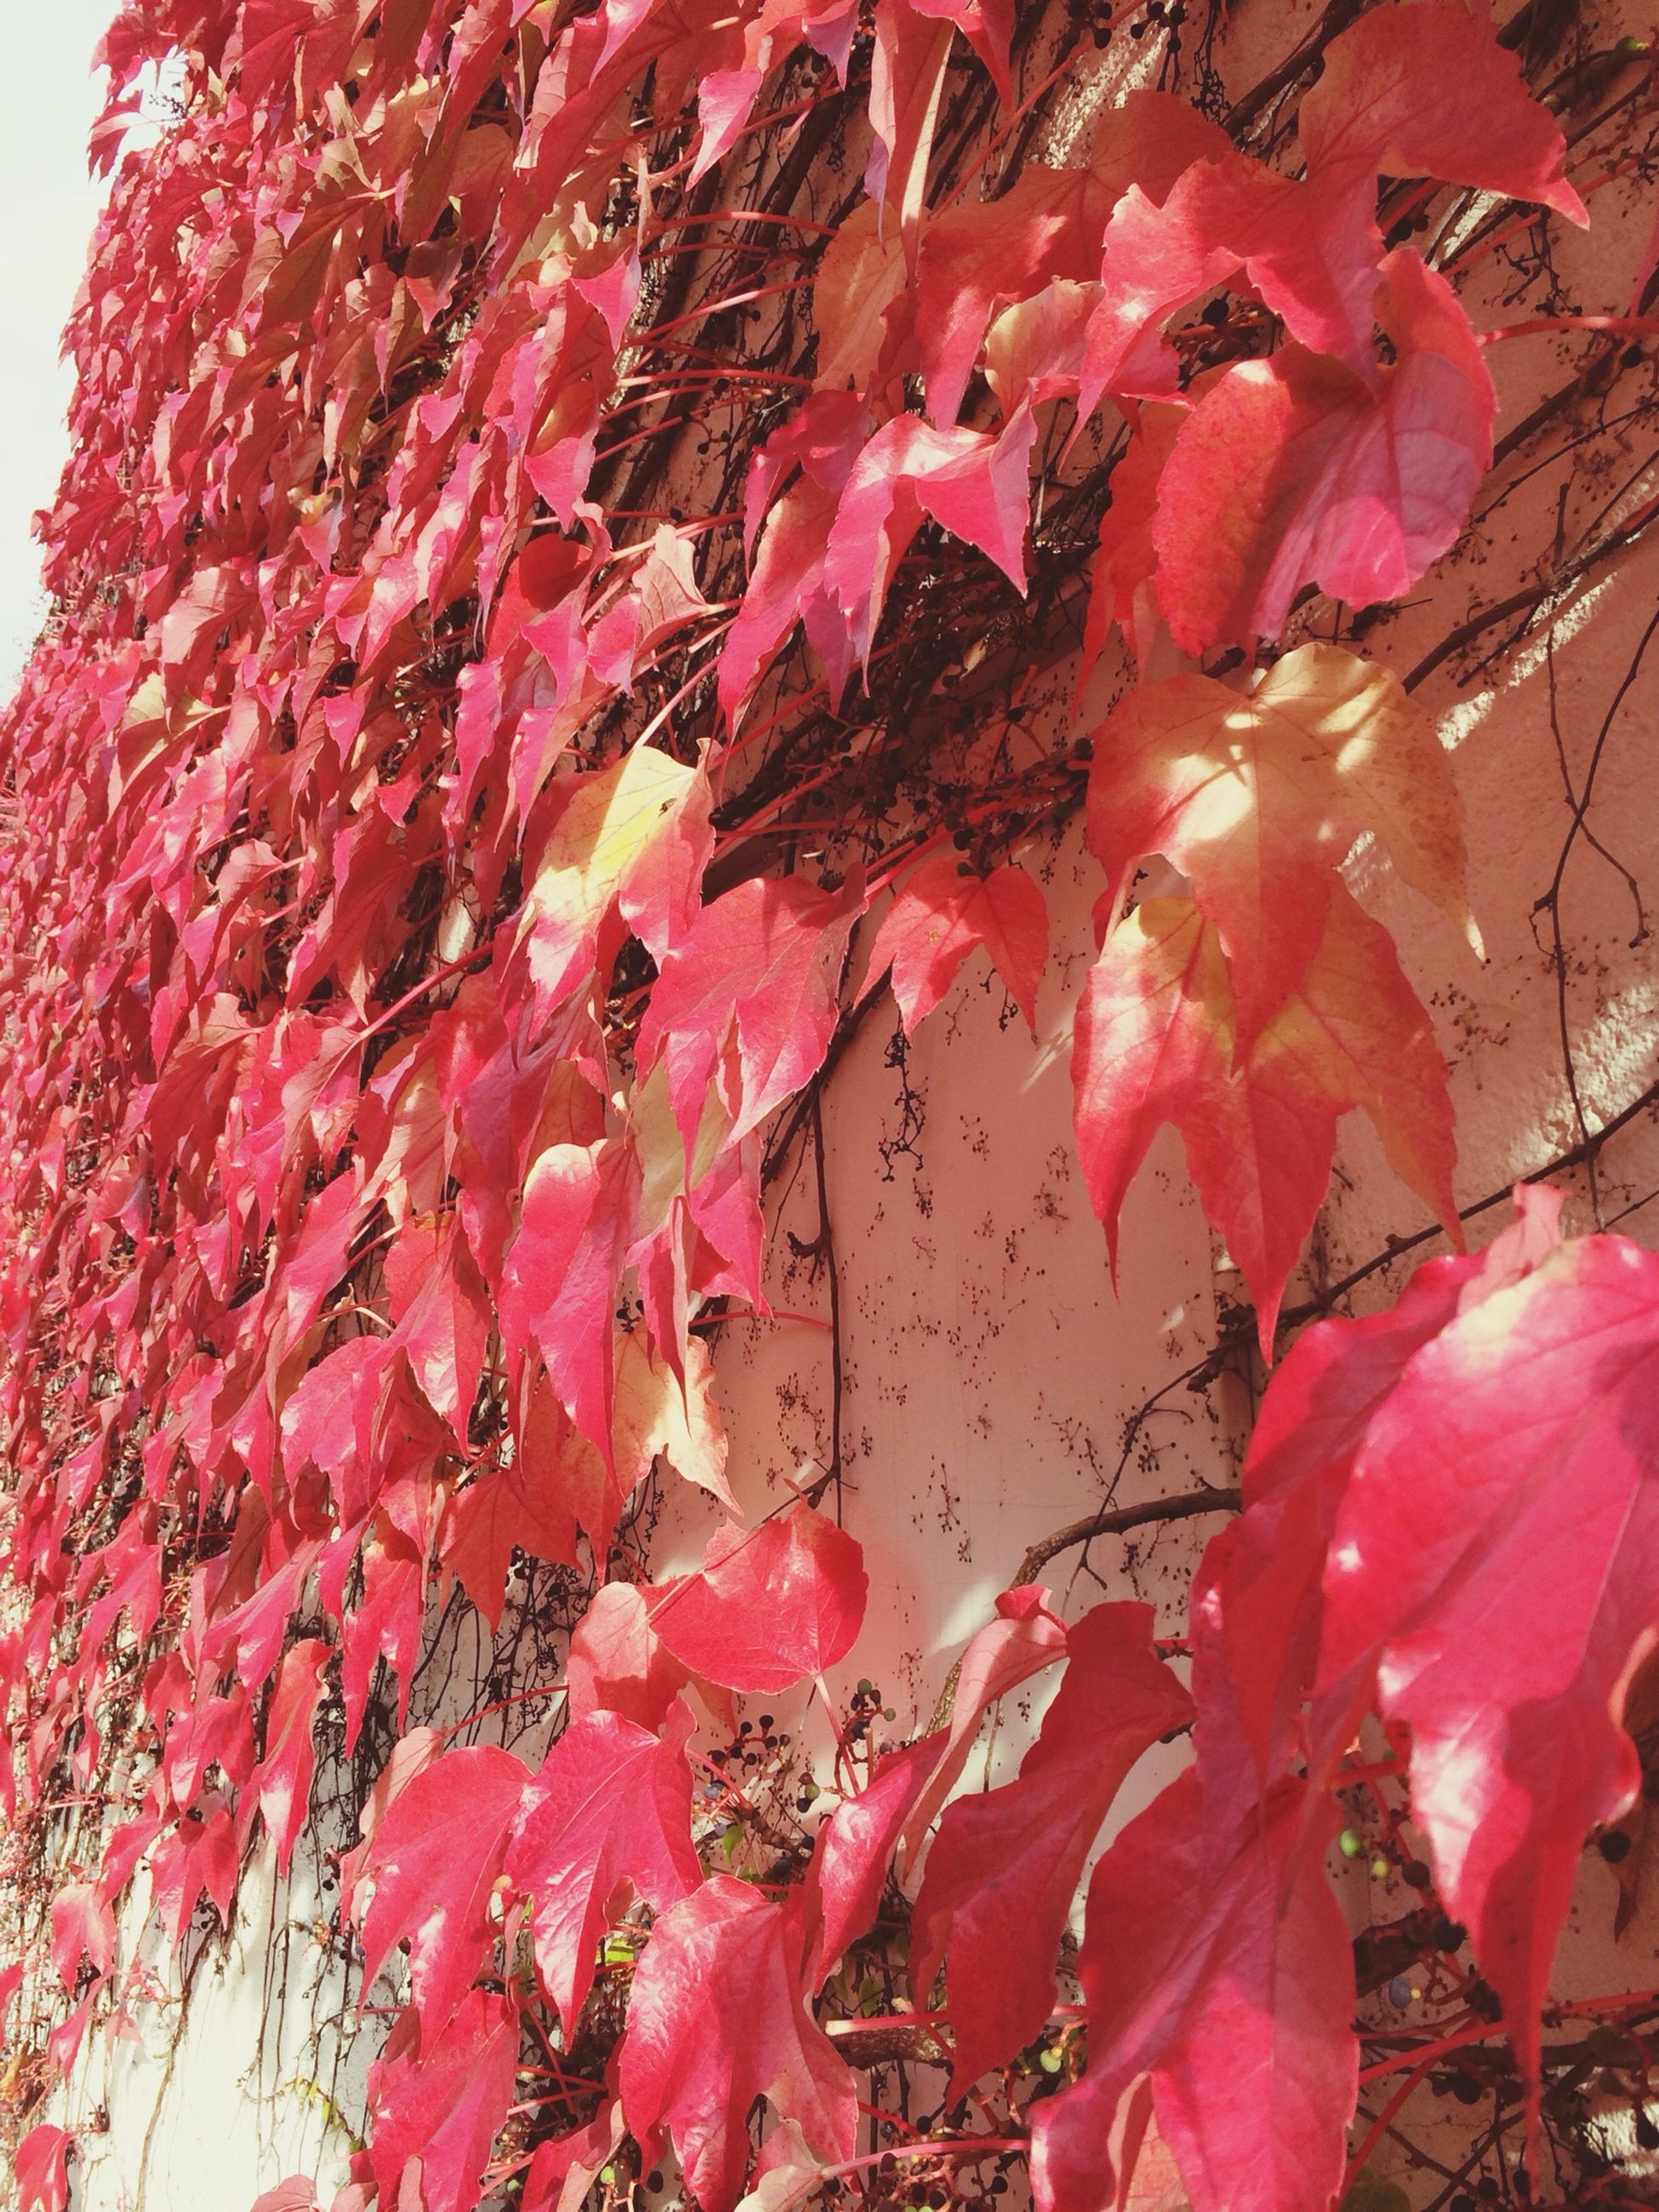 red, pink color, growth, nature, close-up, flower, low angle view, season, leaf, branch, autumn, outdoors, fragility, beauty in nature, plant, change, day, no people, tree, full frame